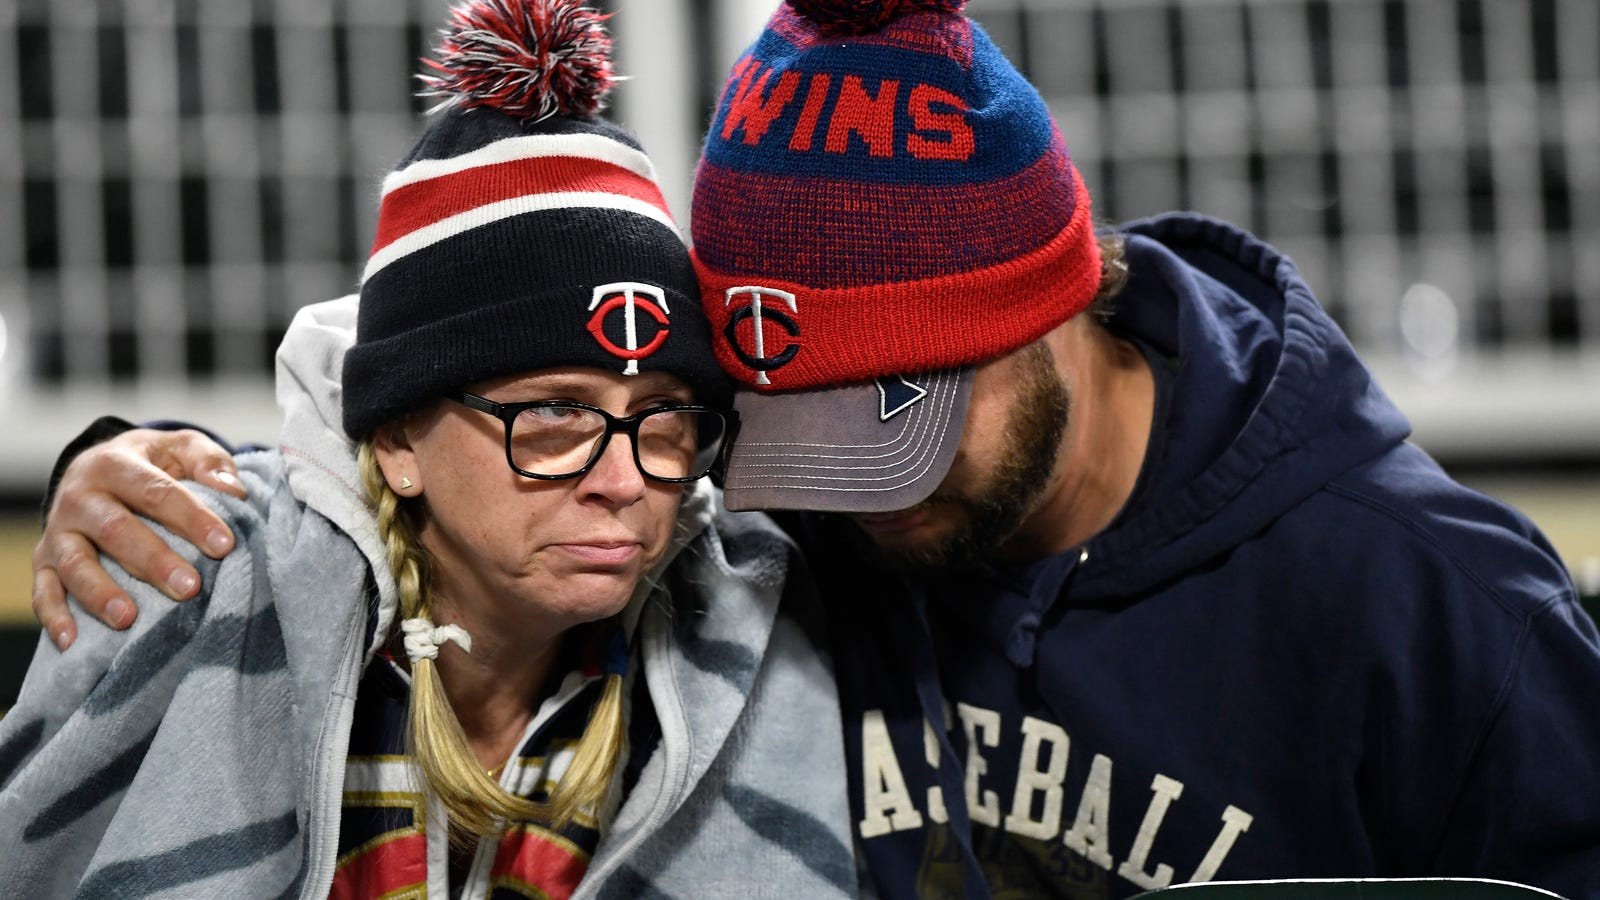 How Is The Twins' Playoff Losing Streak Even Possible?